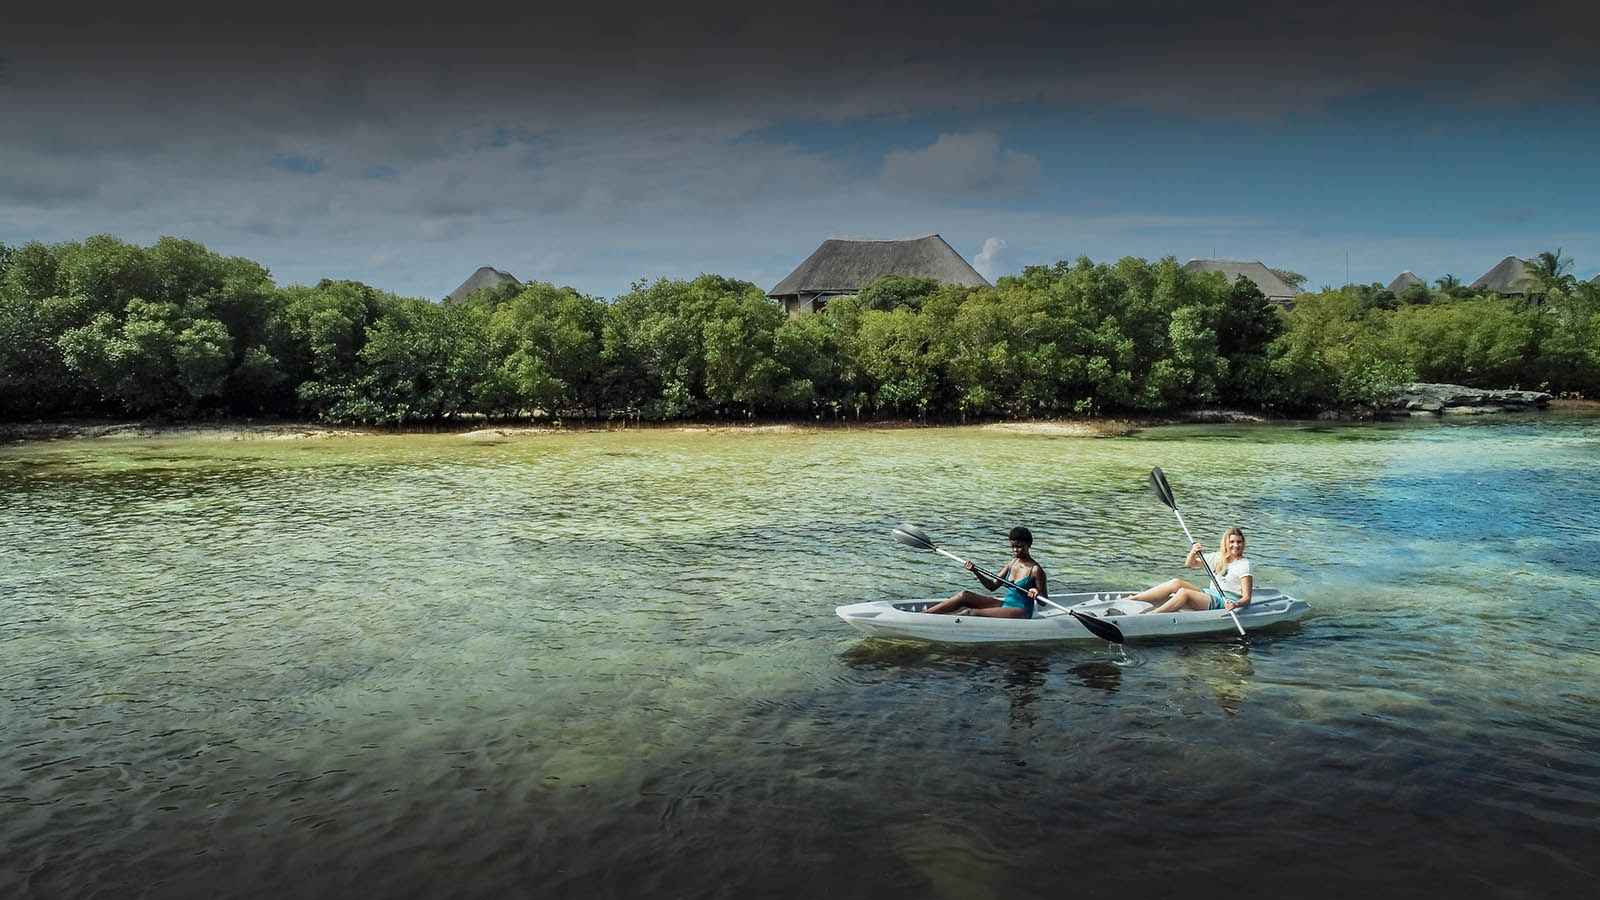 coral lodge nampula-province-mozambique-lodges-zambia-in-style-golden-beaches-kayaking-mangroves